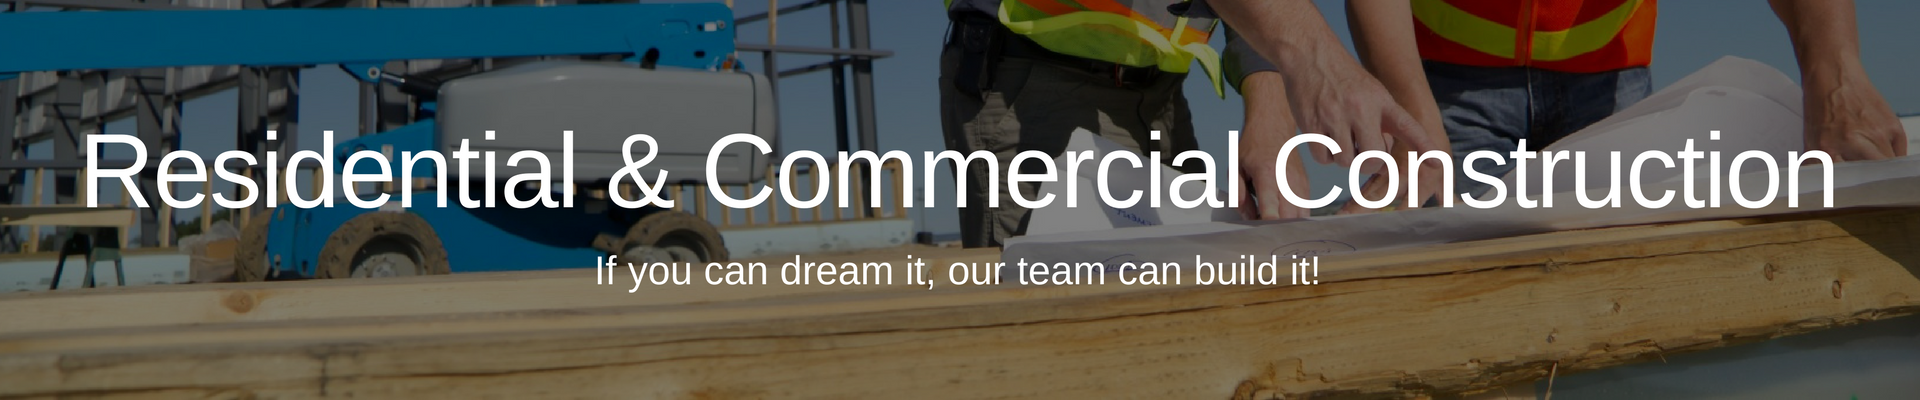 Residential & Commercial Construction